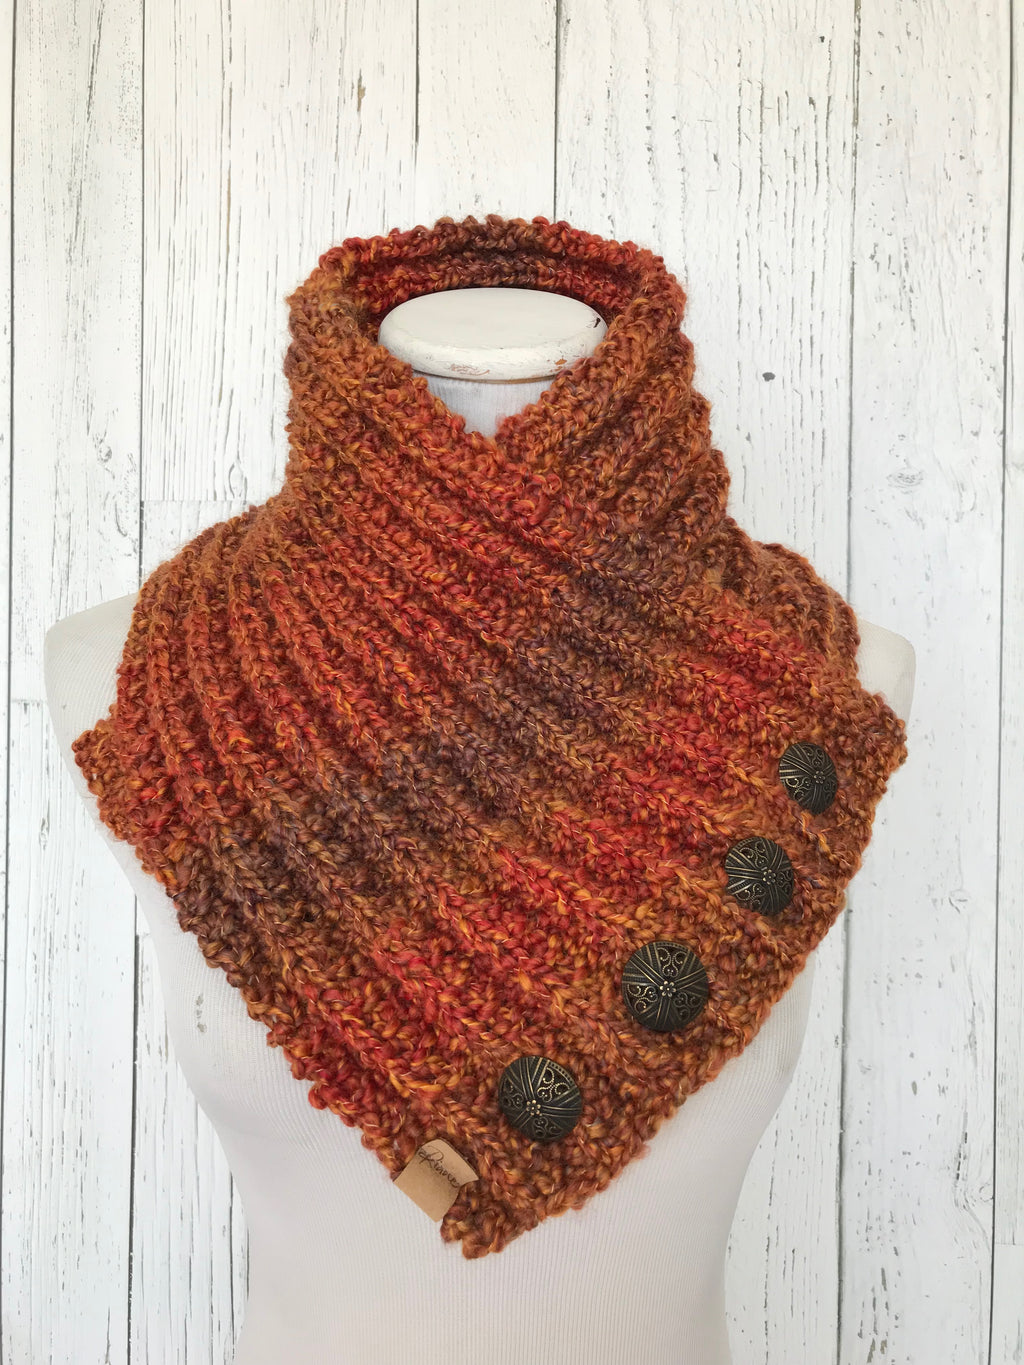 Classic Knit Button Cowl in prairie fire, oranges with bronze buttons